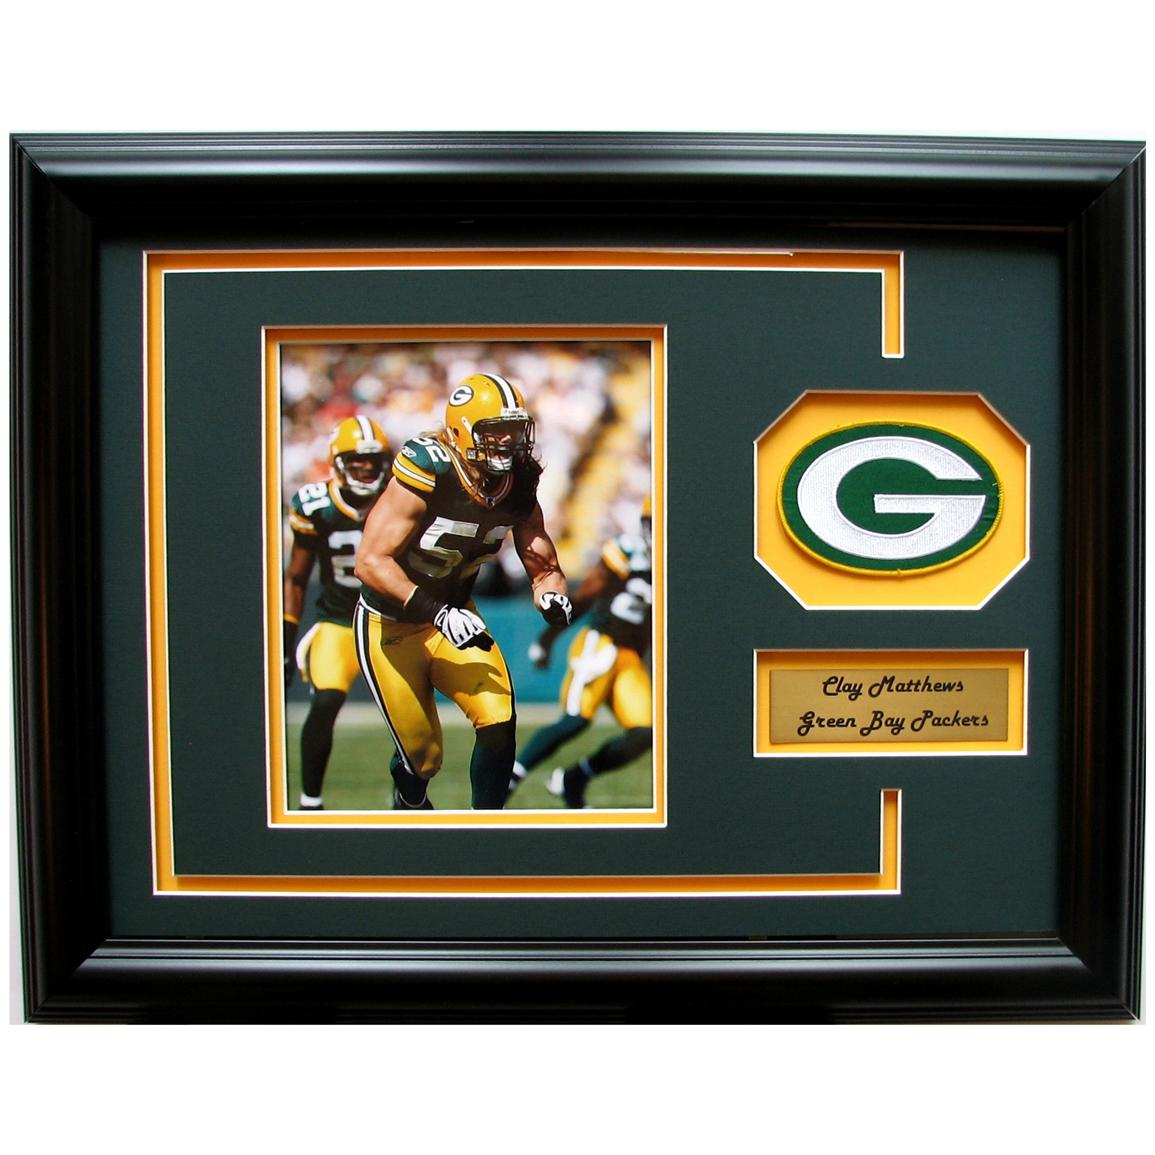 18x23 inch Clay Matthews Framed Photo with Team Patch by CGI Sports Memories™